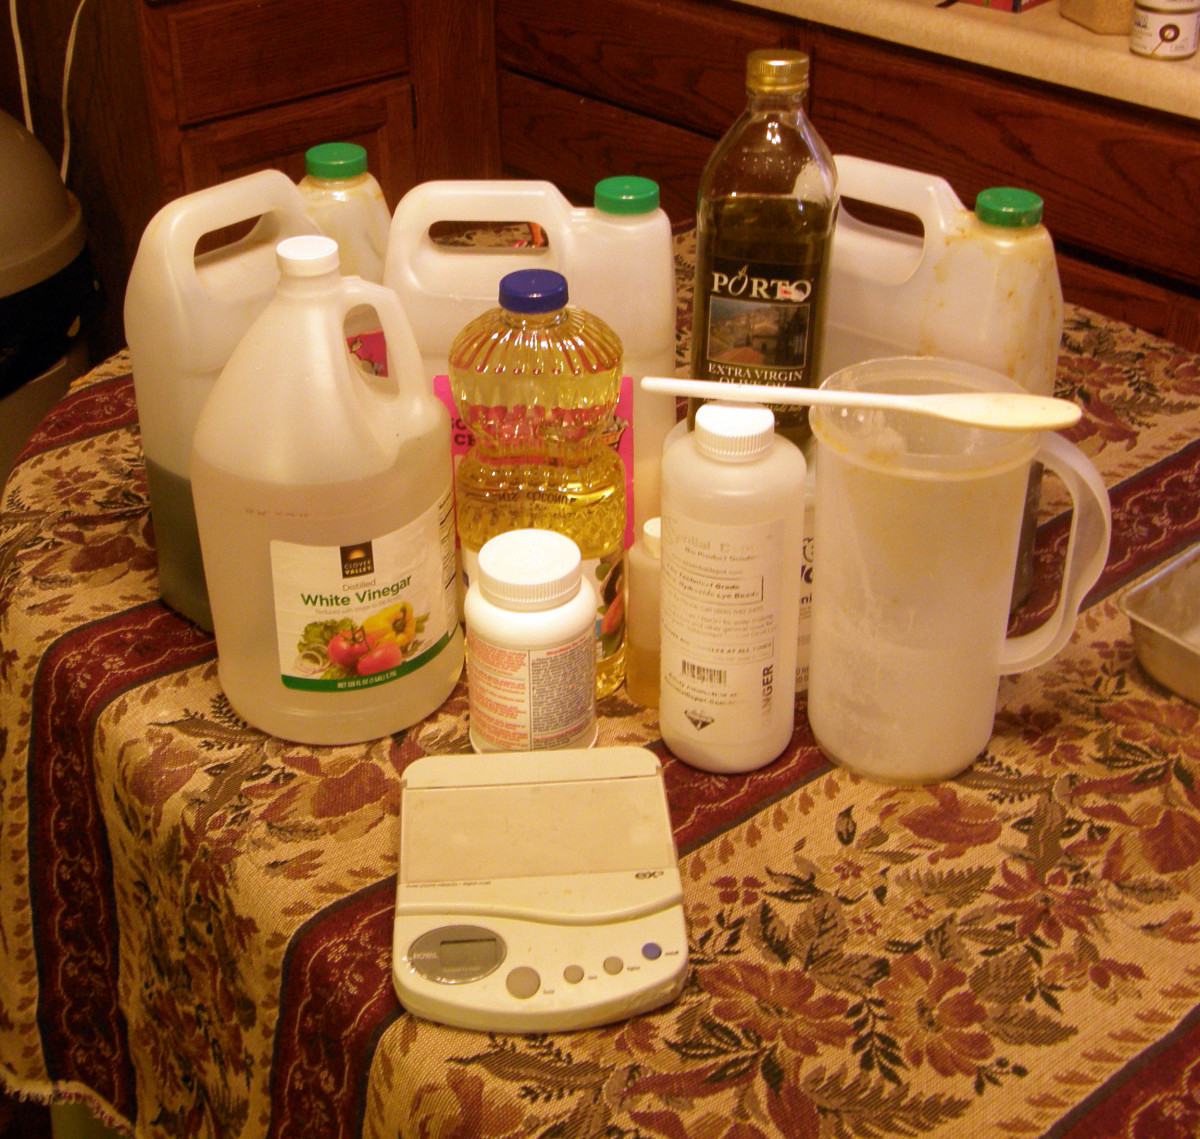 Supplies and equipment for making soap.